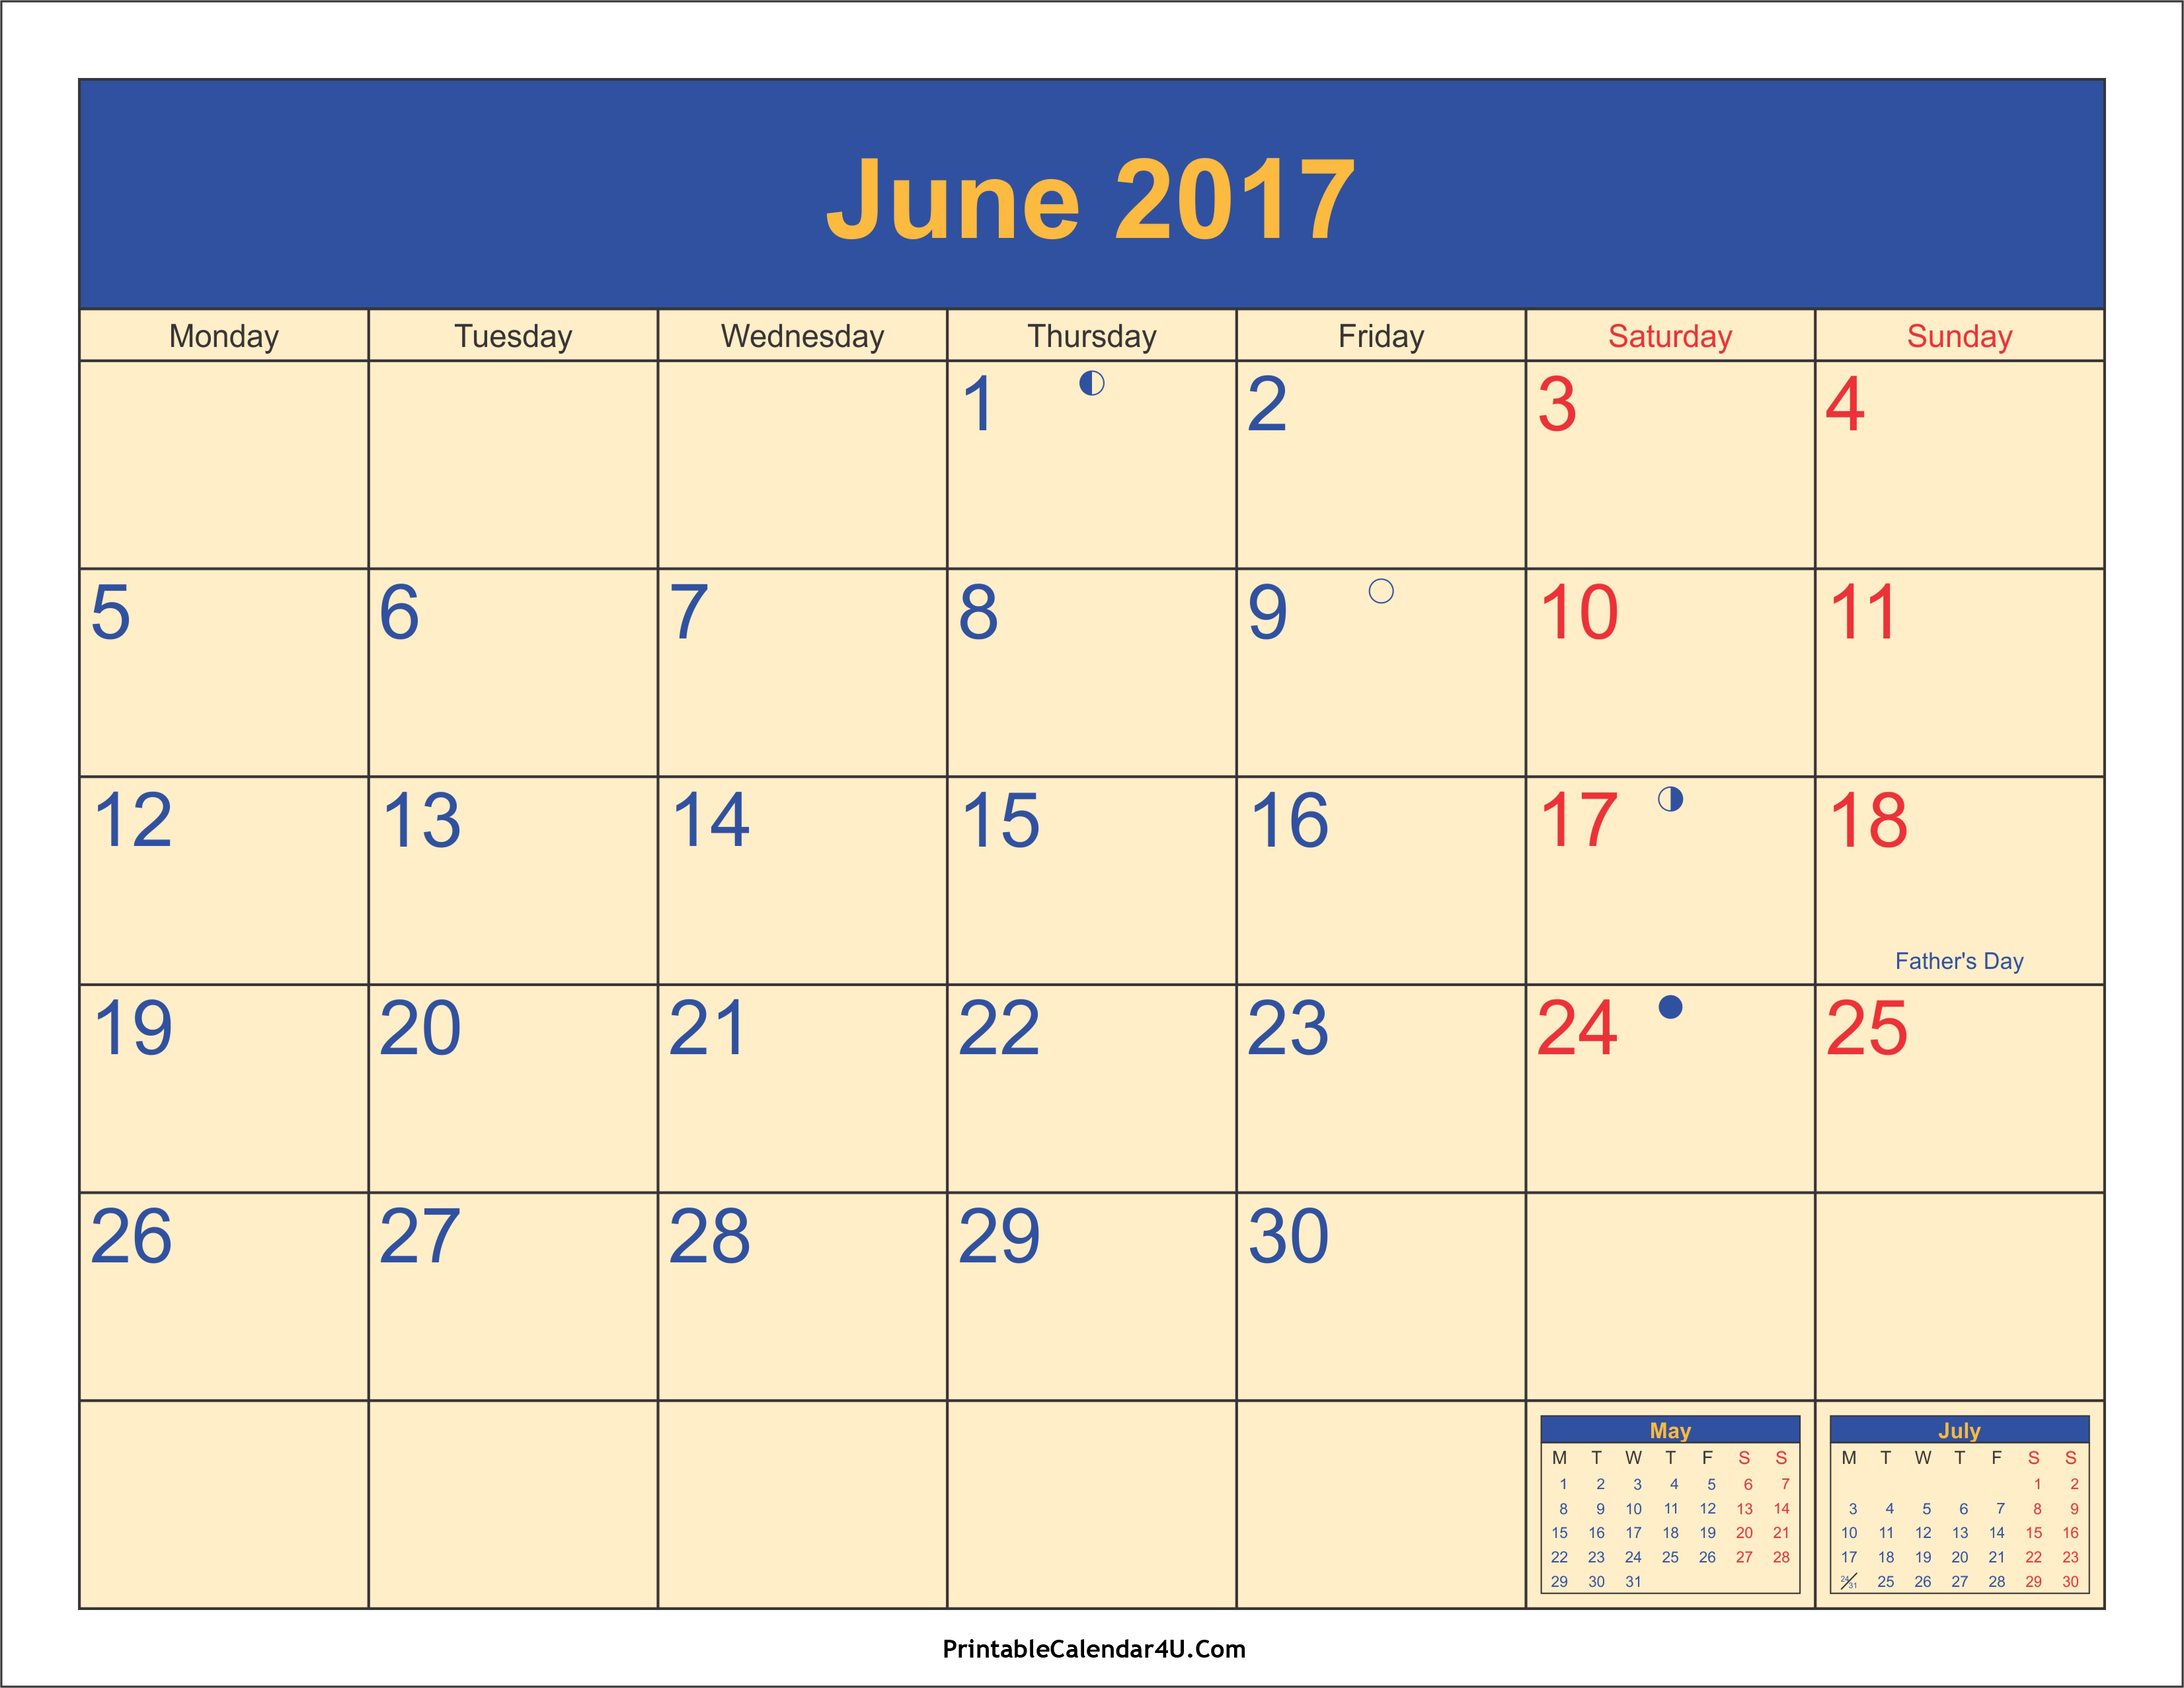 June 2017 Calendar With Holidays | printable calendar templates